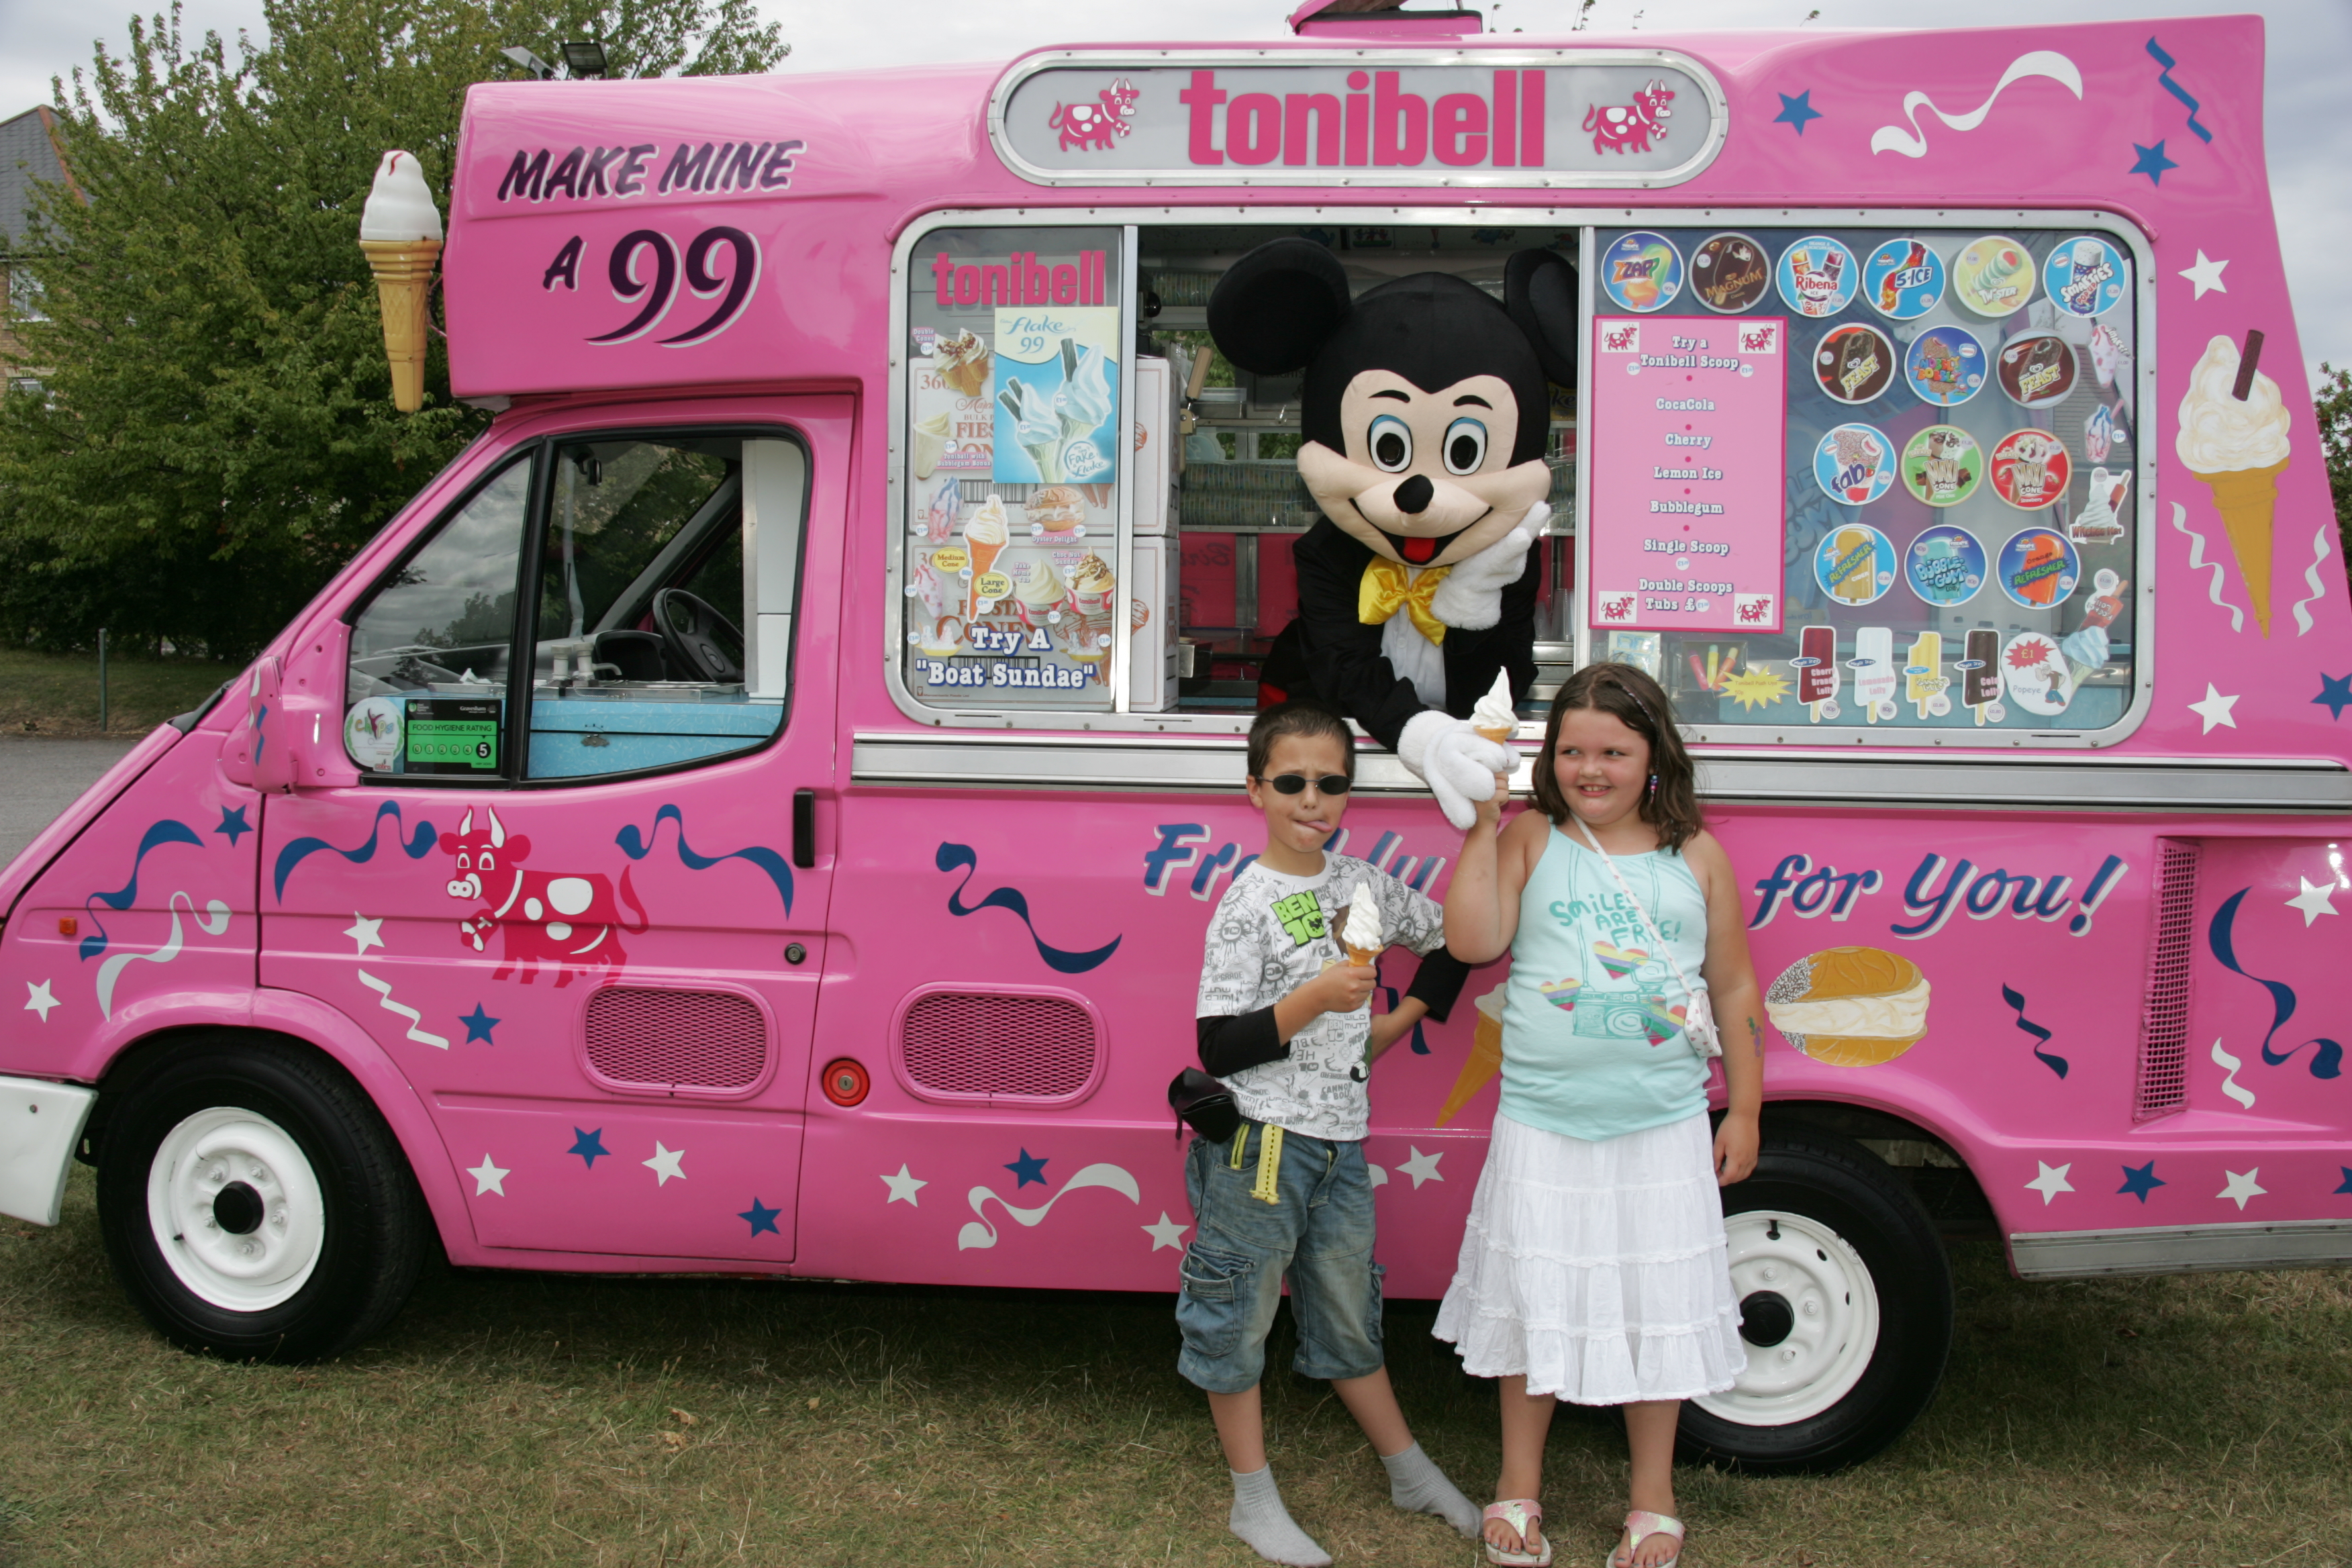 e524c0841e Any occasion party or theme tonibell ice cream vans for hire charity  events- birthdays- school fetes-fayres- weddings